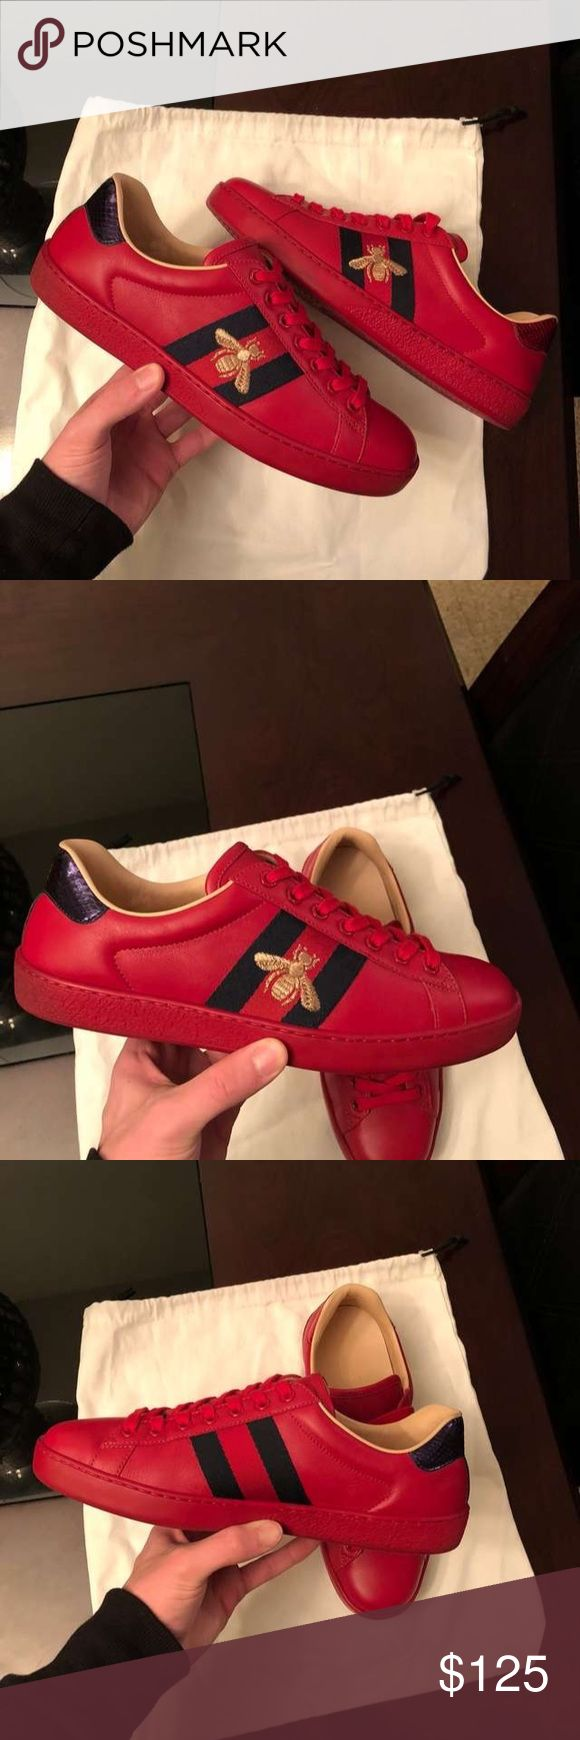 Gucci Ace Bee Sneakers i Have sizes 6-13 Available!  Please Text me at (219) 213-6251 to see if i still have your size in stock or for more pictures Before purchase ! 100% authentic  comes with Box , Dustbags , Receipts And Carebooks price is Negotiable! Serious Inquires only! Gucci Shoes Sneakers